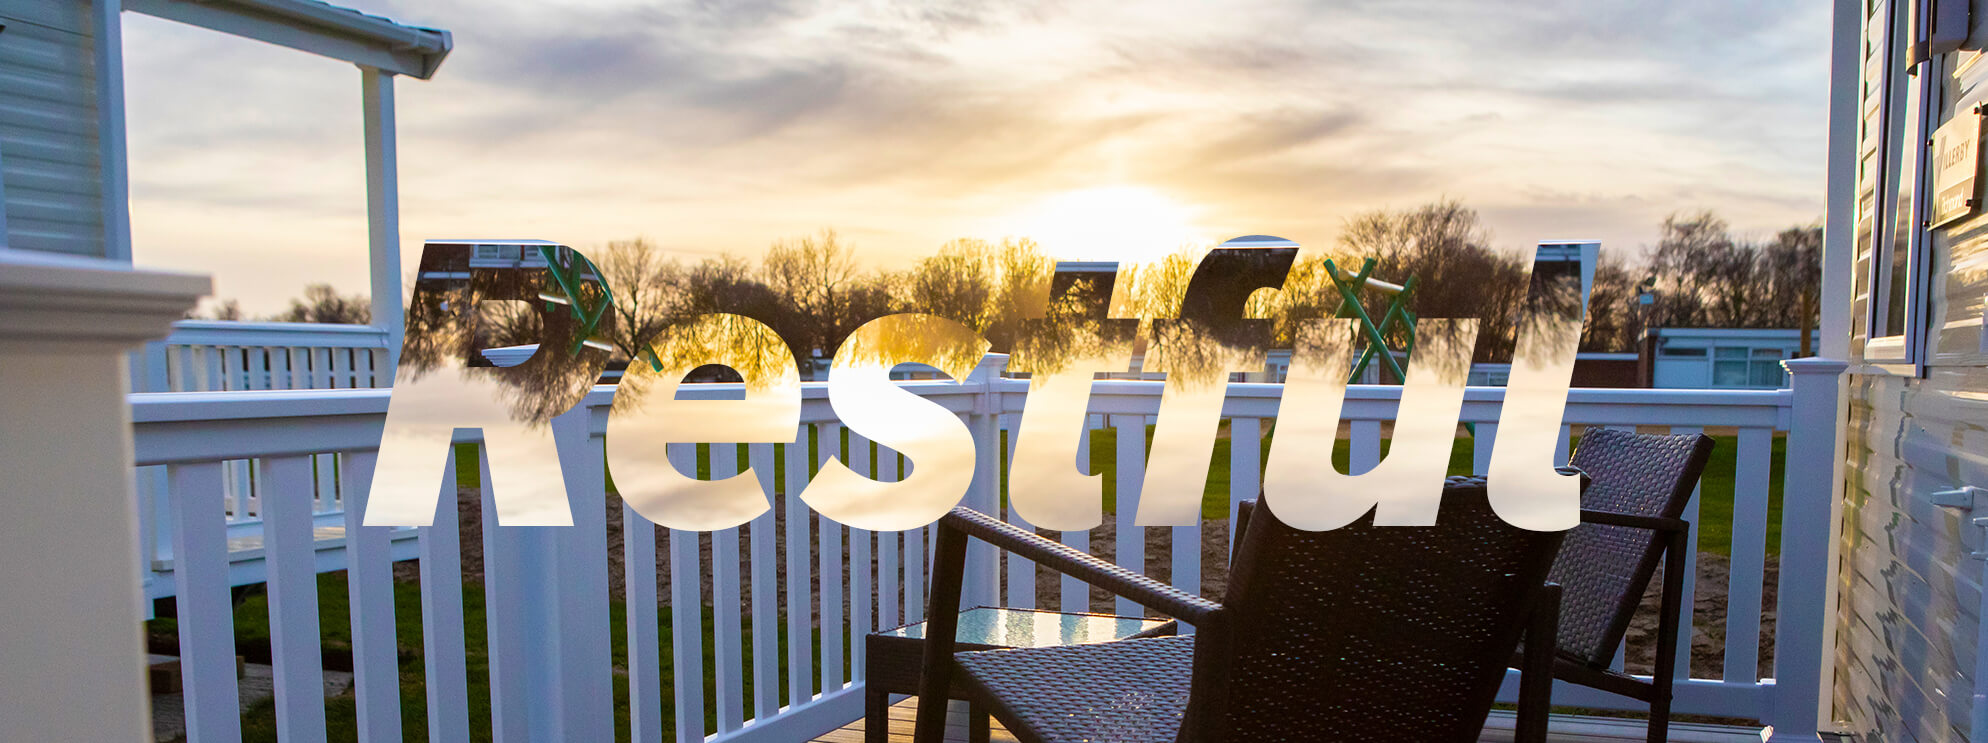 Luxury Holiday Restful at Belle Aire Hemsby Beach